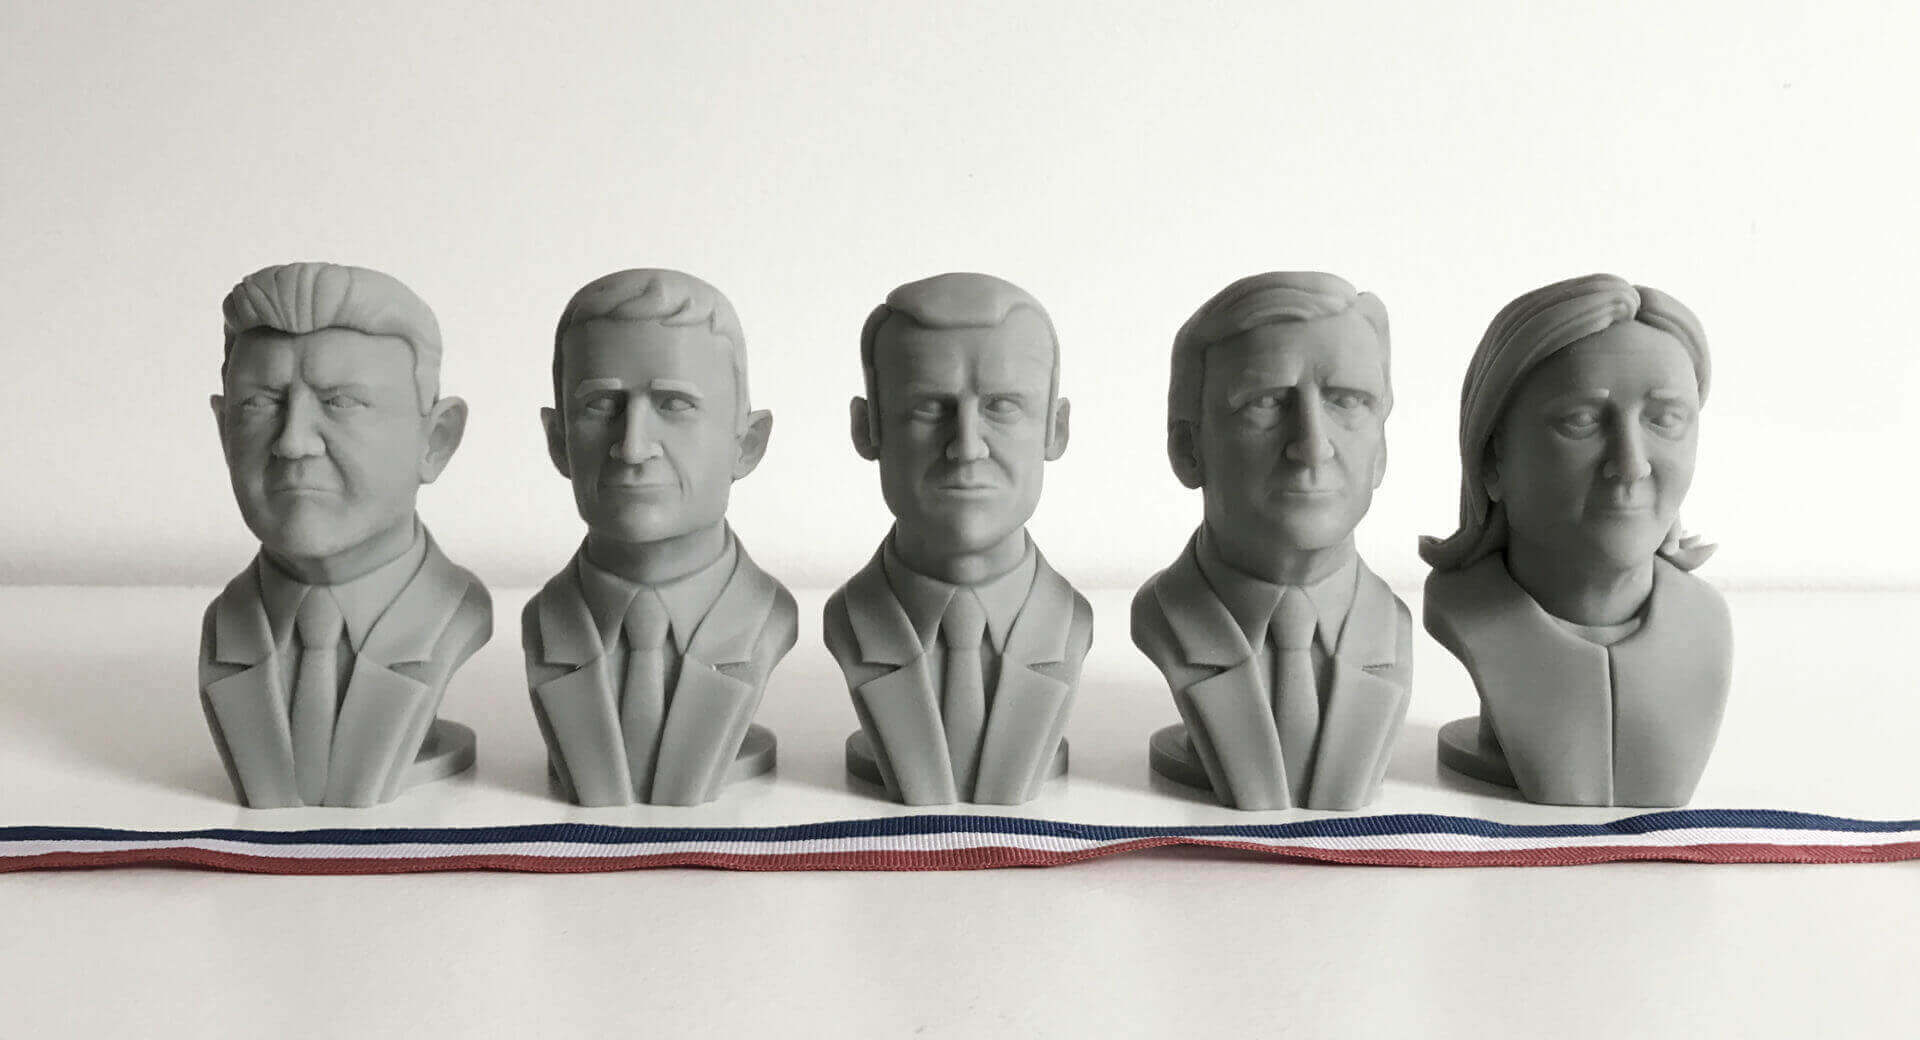 Cults3D Brings the Upcoming French Election to Your 3D Printer | All3DP